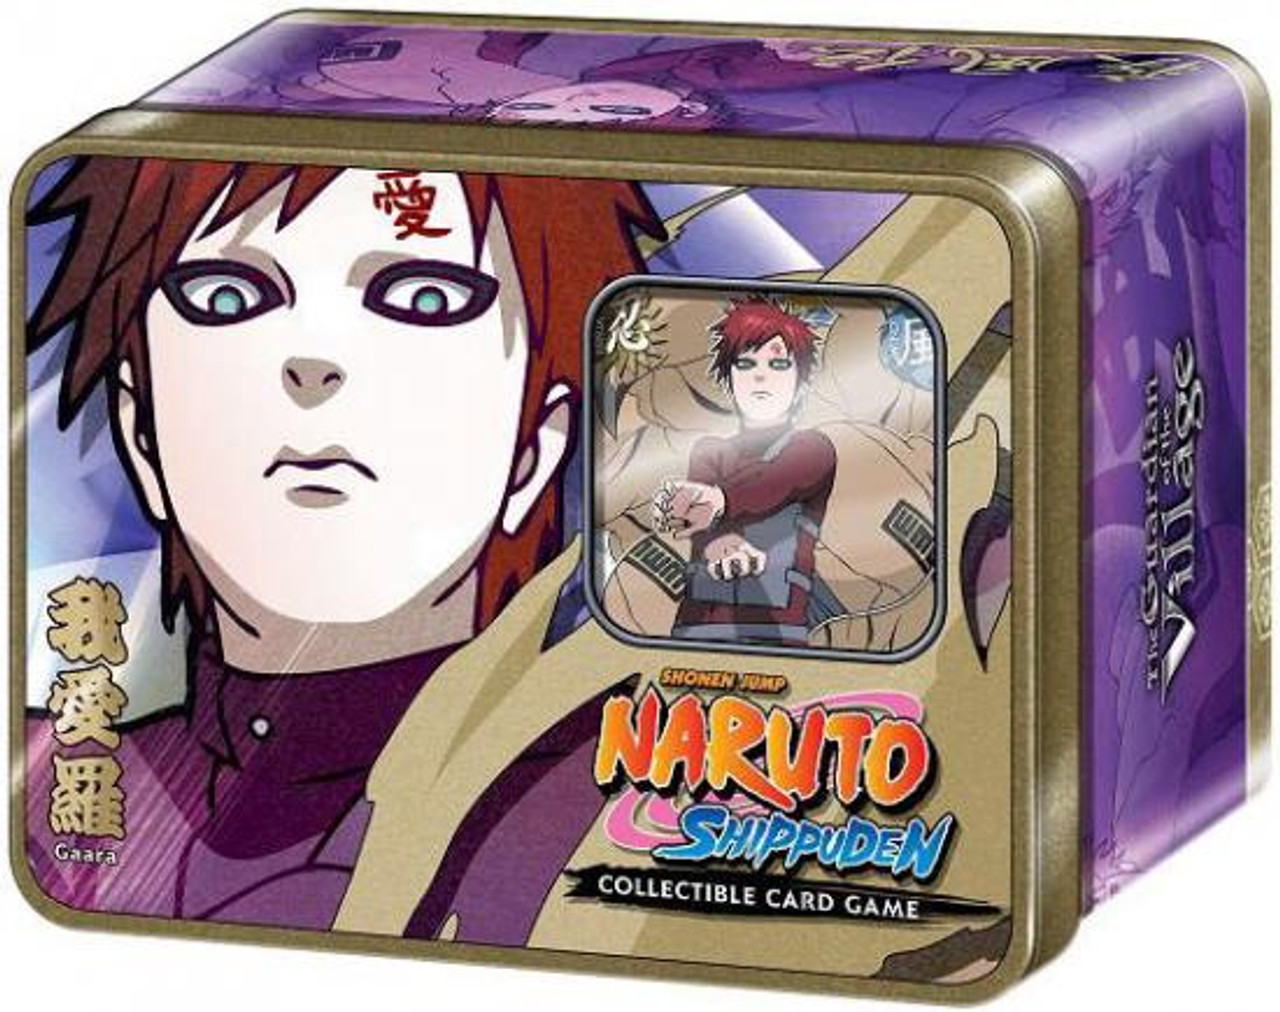 Naruto Shippuden Card Game Guardian of the Village Gaara Collector Tin